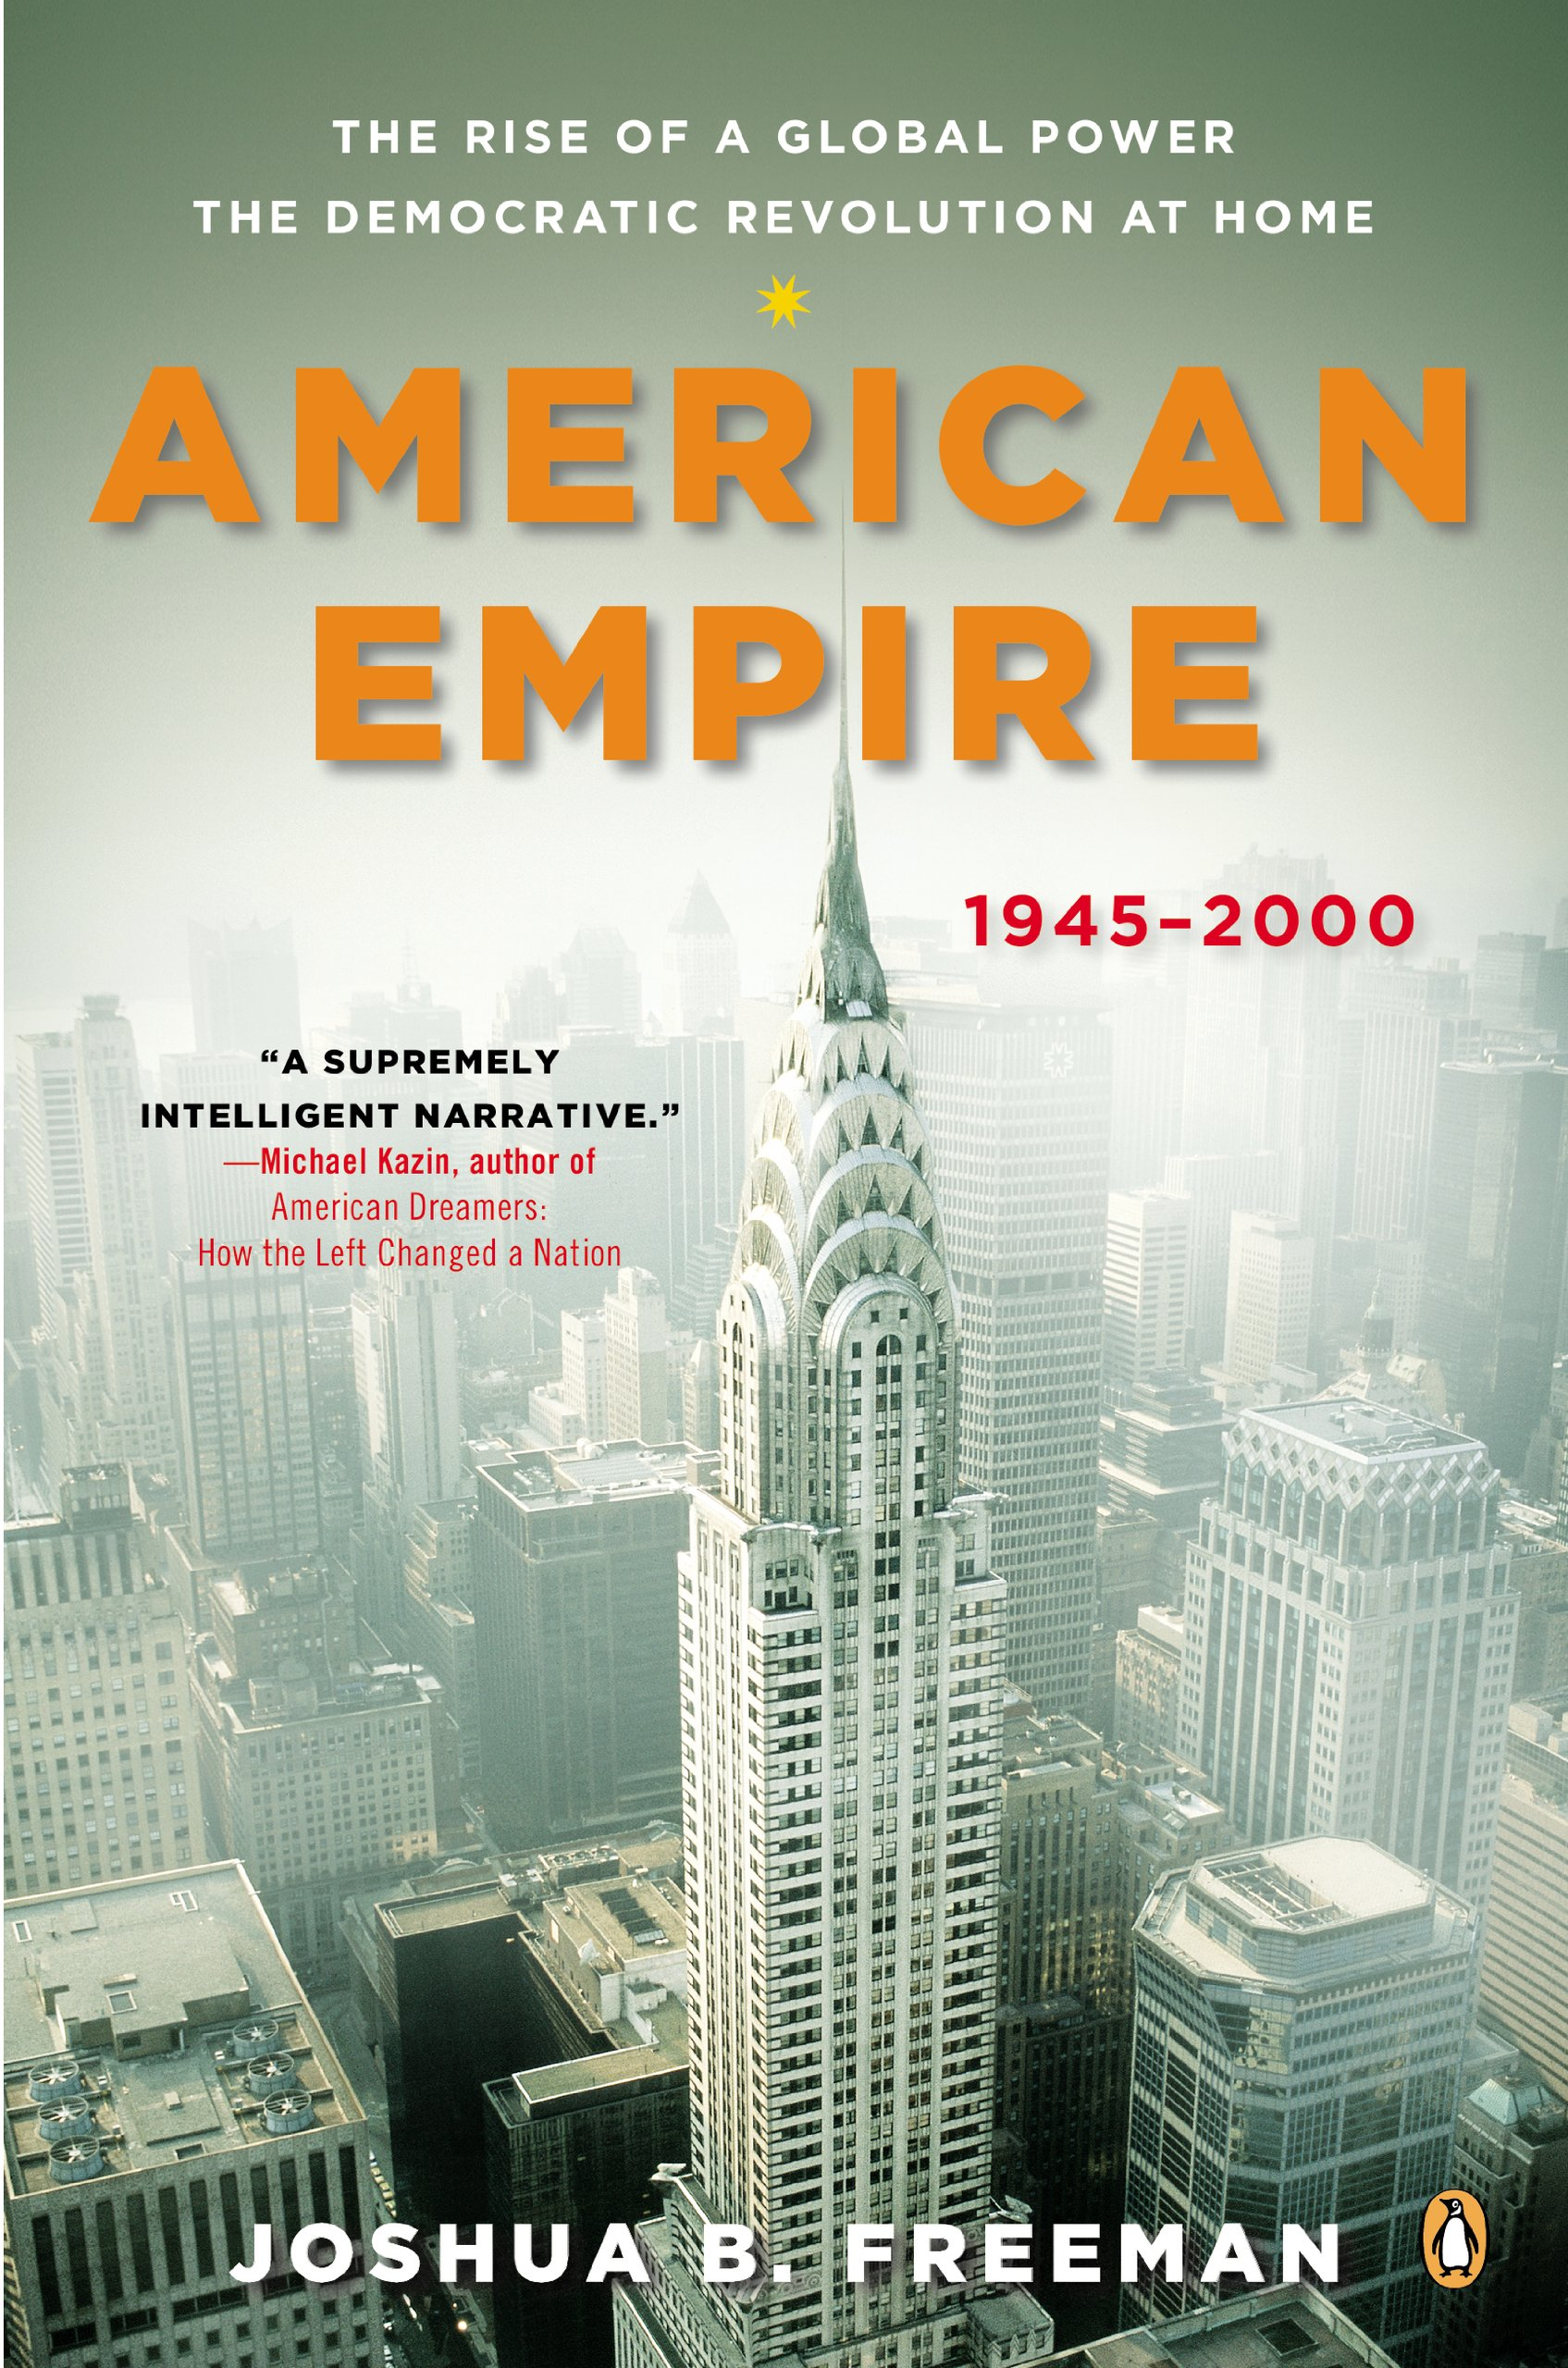 American Empire: The Rise of a Global Power, the Democratic Revolution at Home, 1945-2000 (The Penguin History of the United States Book 2)